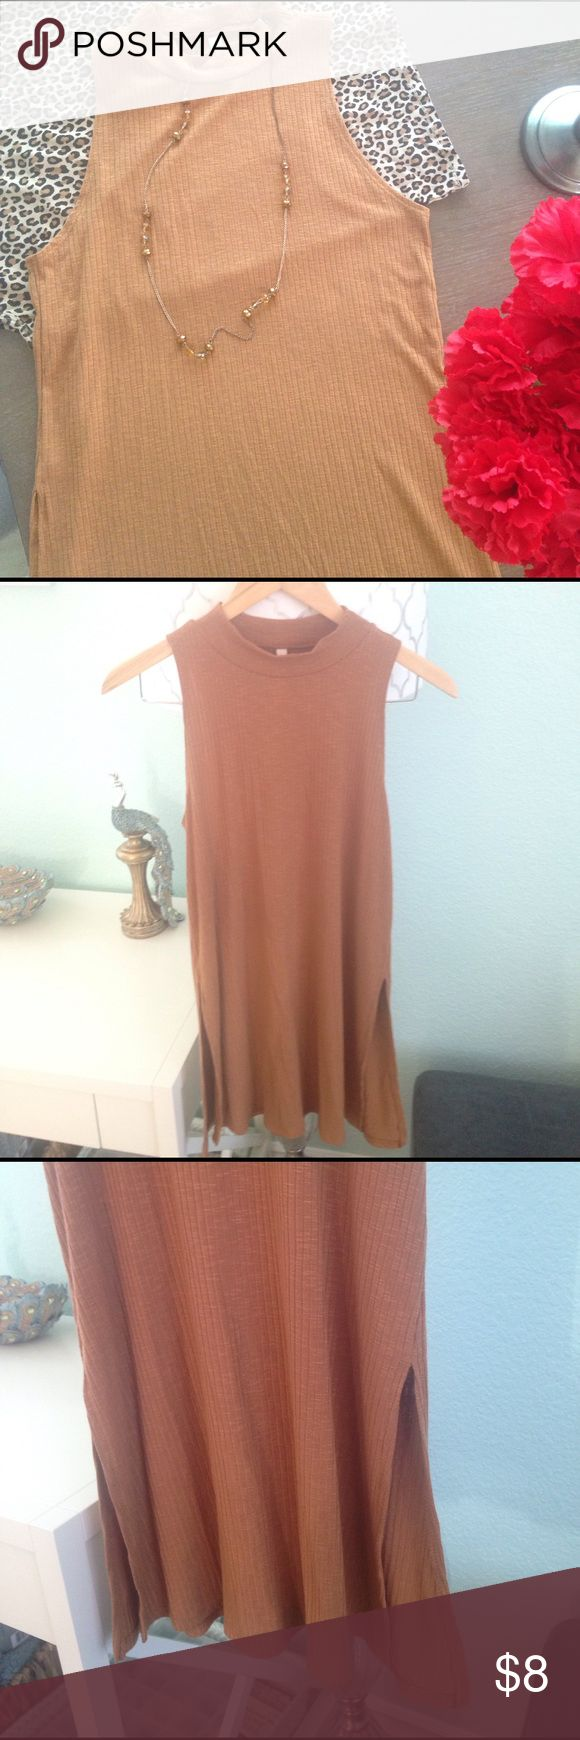 Camel colored high neck sleeveless tunic This tunic looks fabulous with leggings under a jacket or kimono . The camel color is gorgeous. Soft material. High slit openings on the bottom sides that might show some midriff if you have long torso. No size on tag but fits like M Tops Tunics